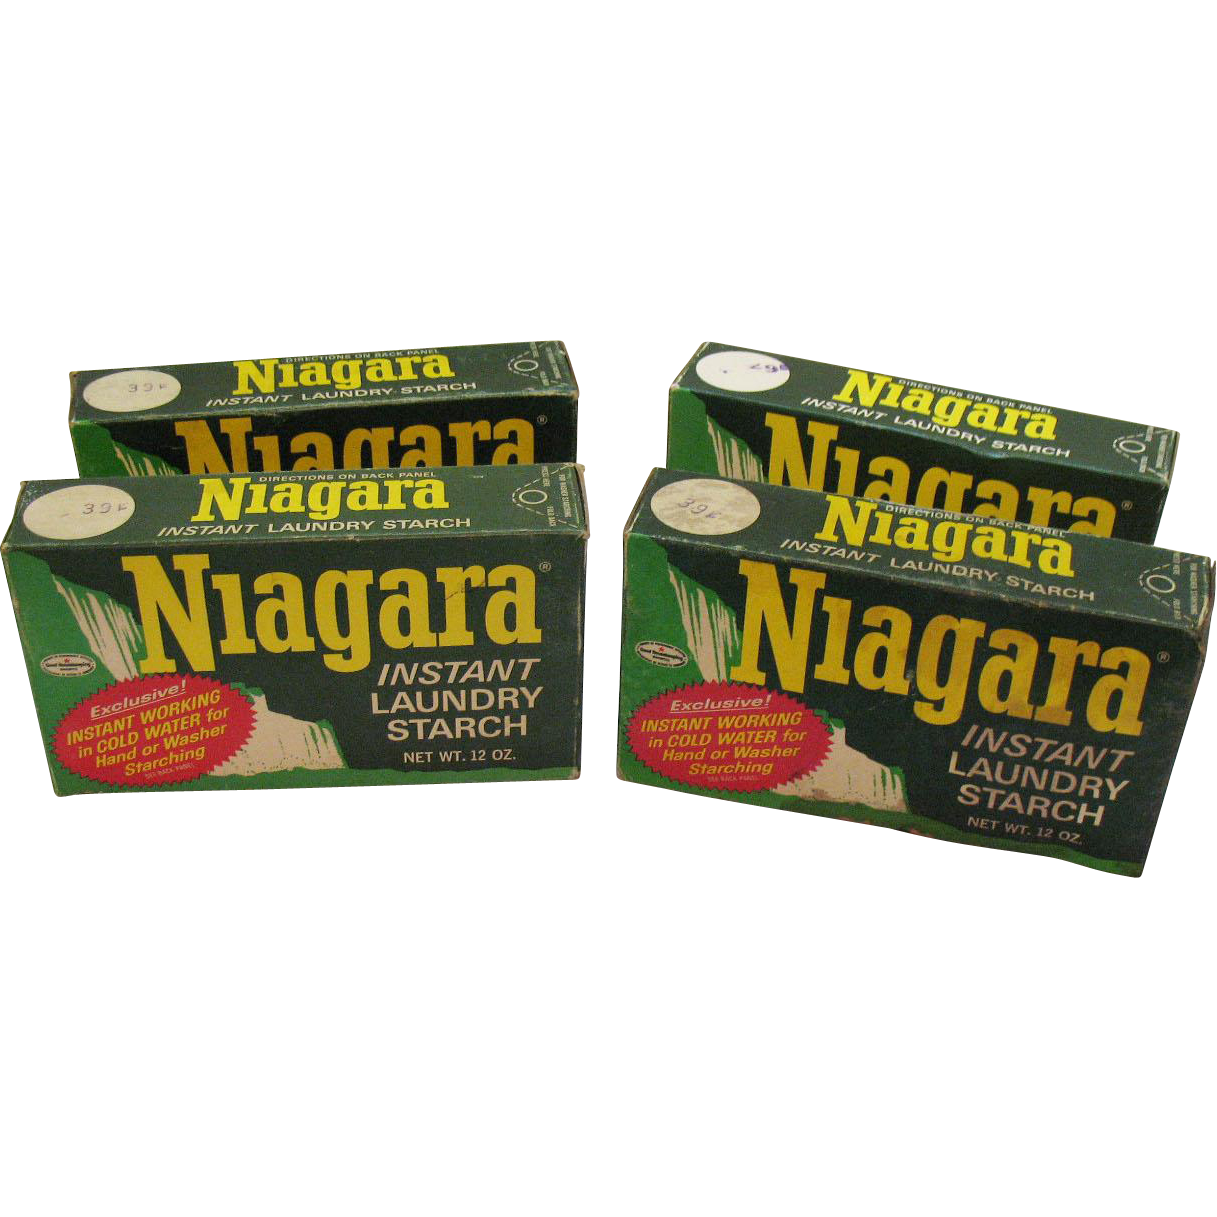 Vintage 4 Boxes Niagara Laundry Starch from Early 1960s Never Opened Good Condition